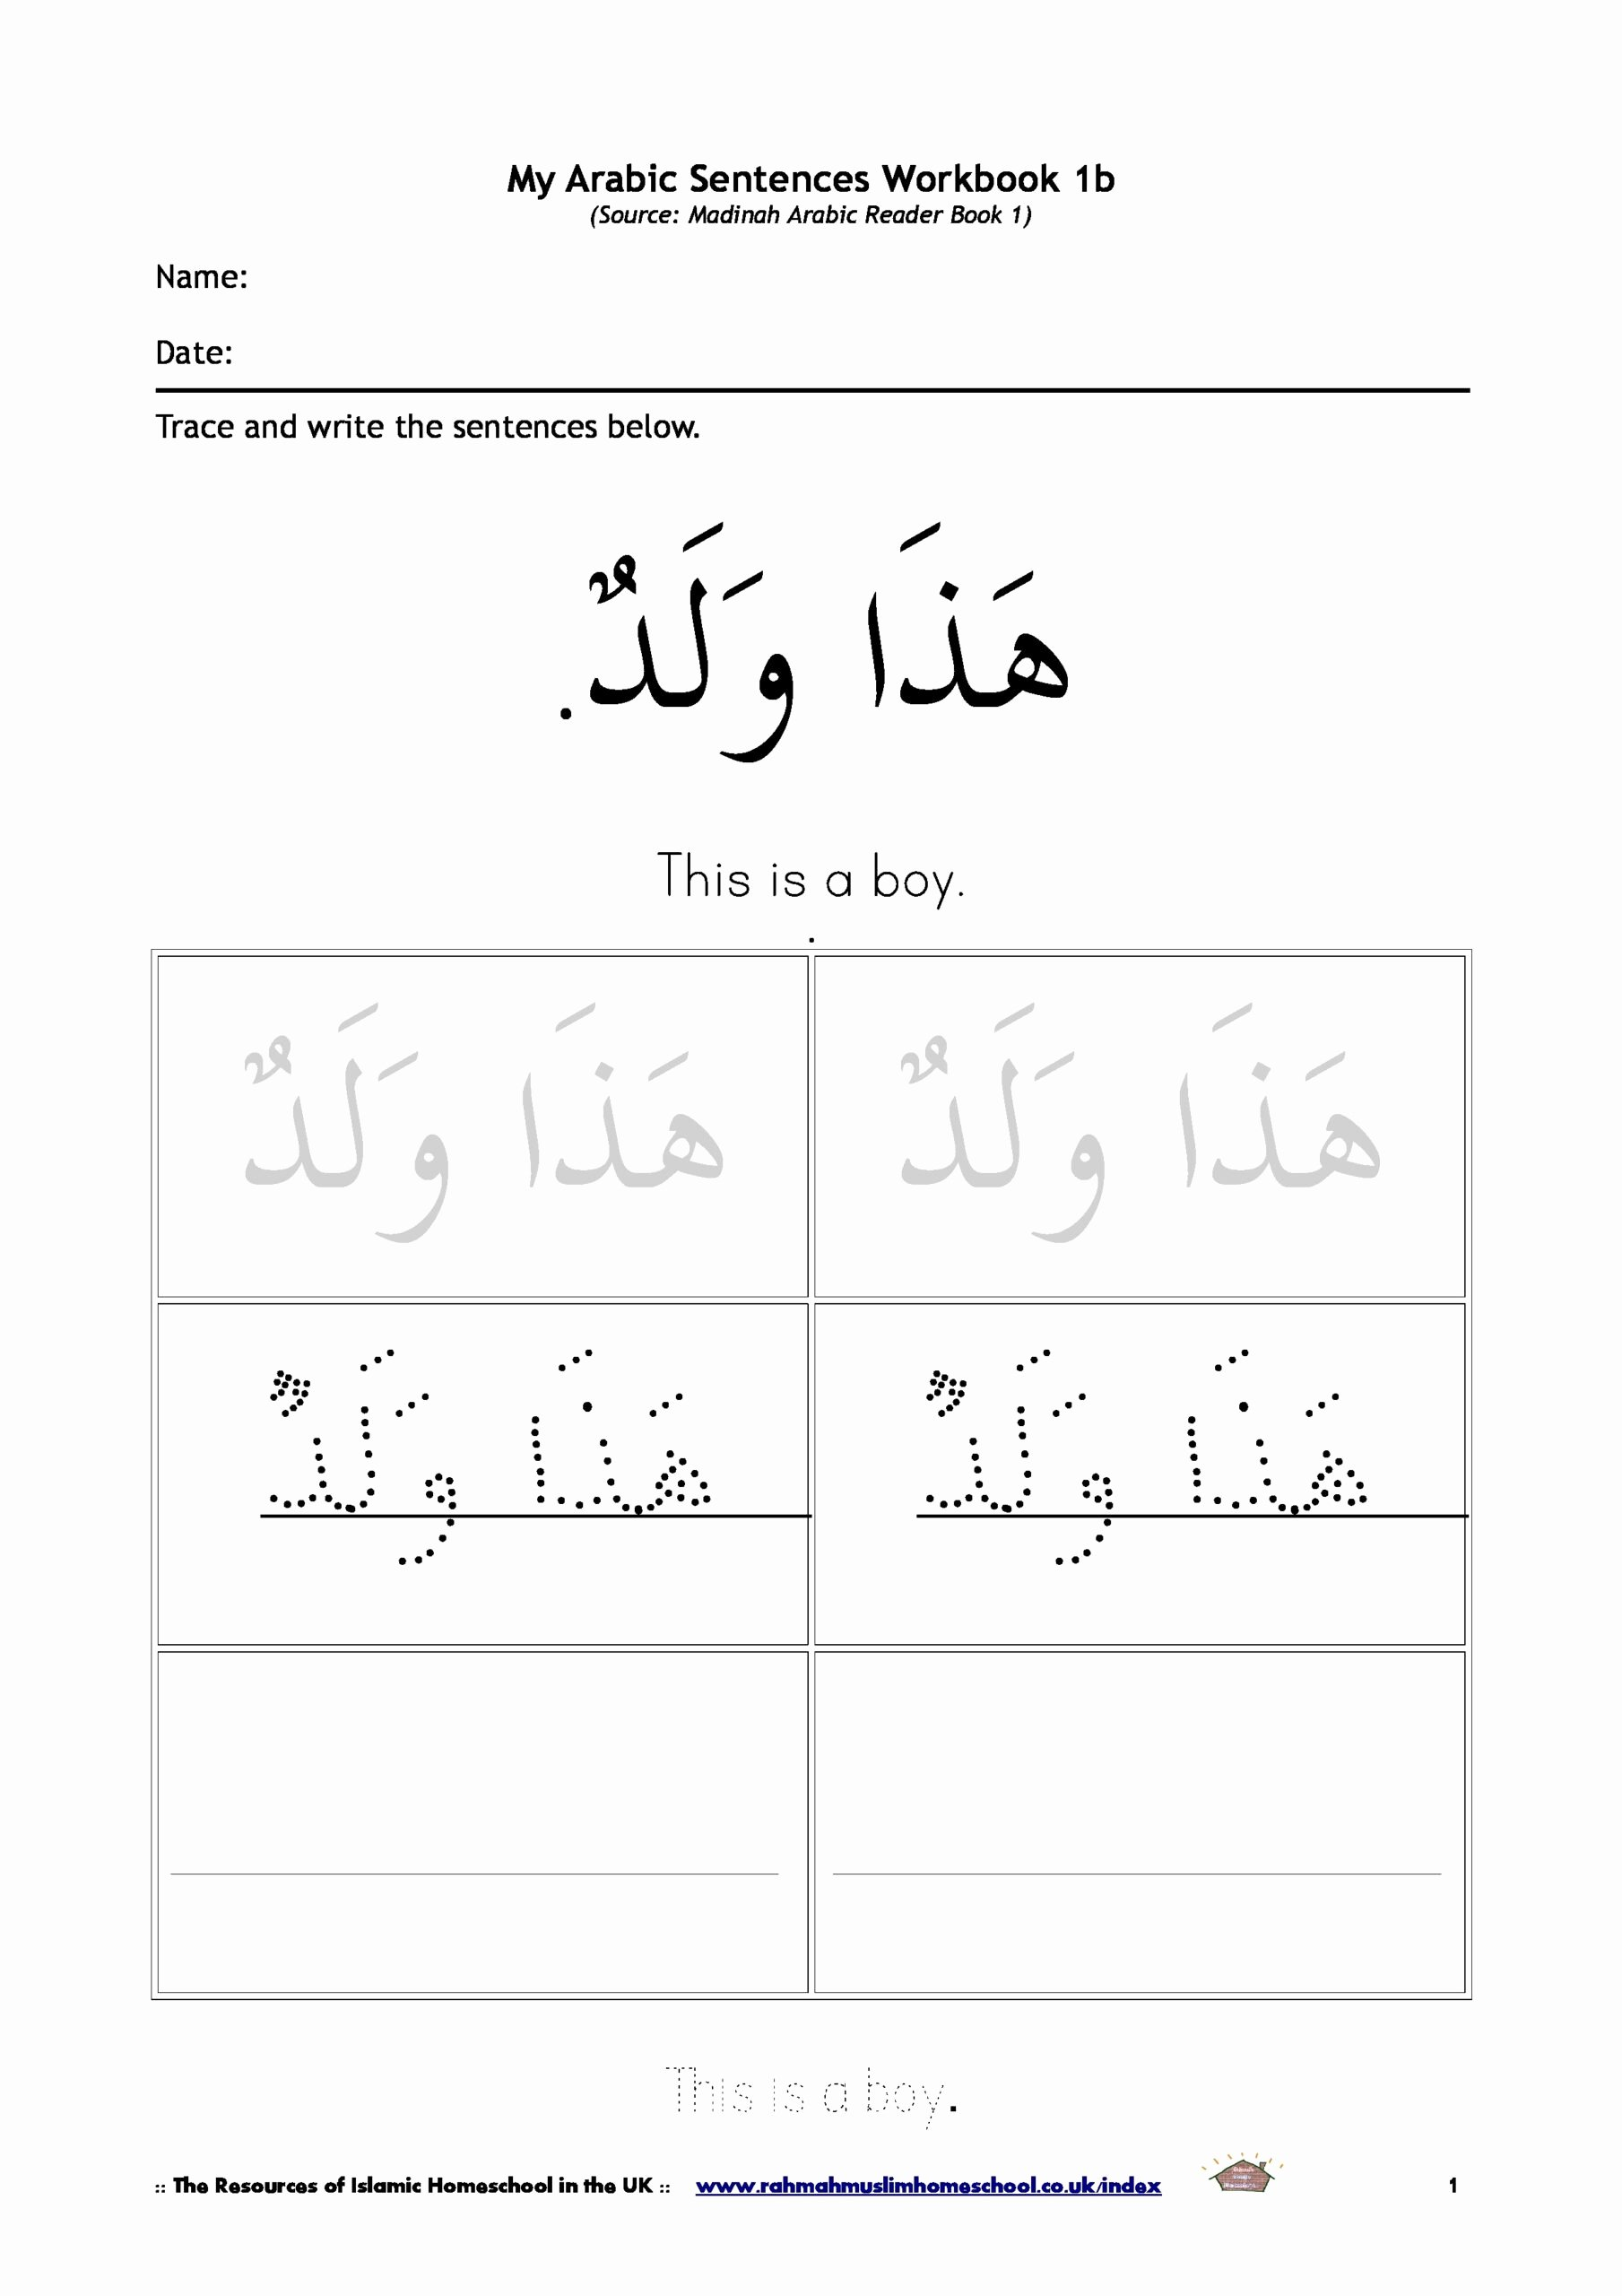 Arabic Worksheets for Preschoolers Fresh Basic Vocabulary and Short Sentences In Arabic for Kids the